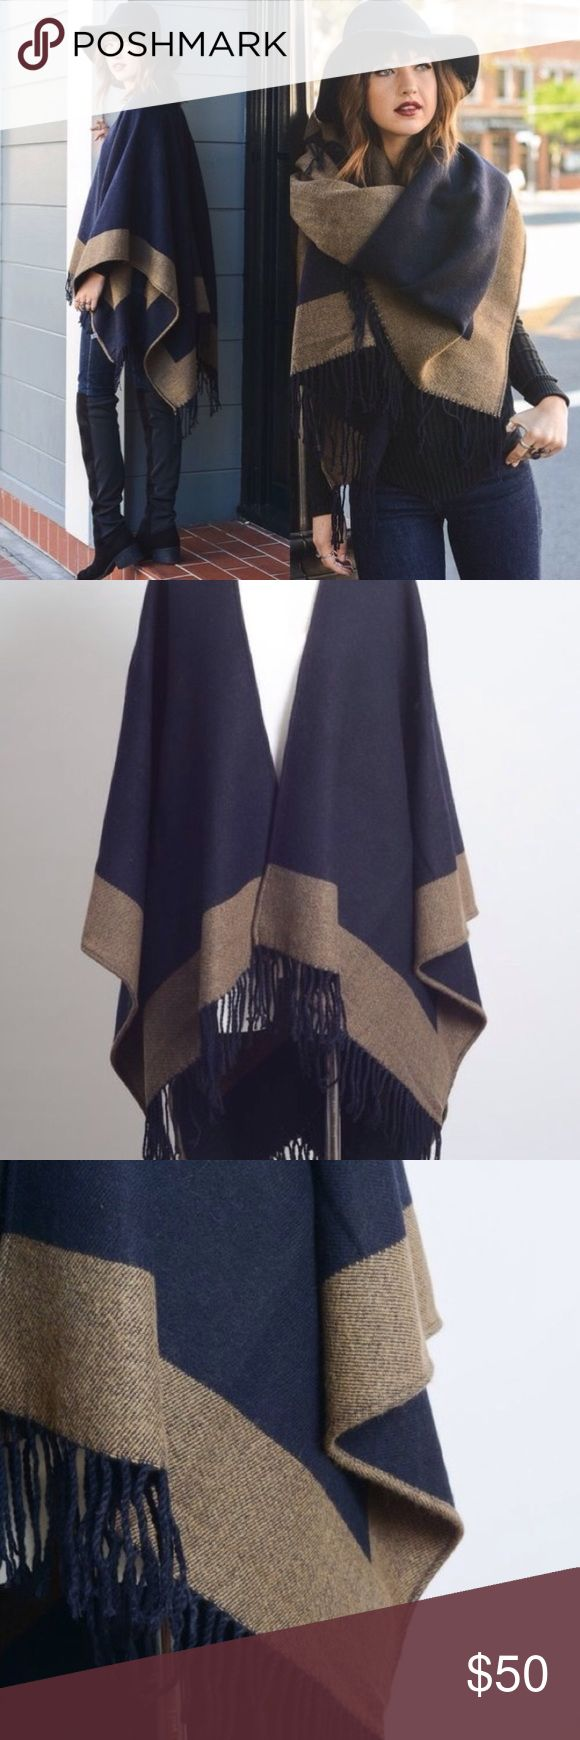 """Navy & Tan Poncho Wrap A must have for Fall/Winter season. One size: 57"""" x 26"""". Material: 100% Acrylic. Price is firm unless bundled.  Sweaters Shrugs & Ponchos"""